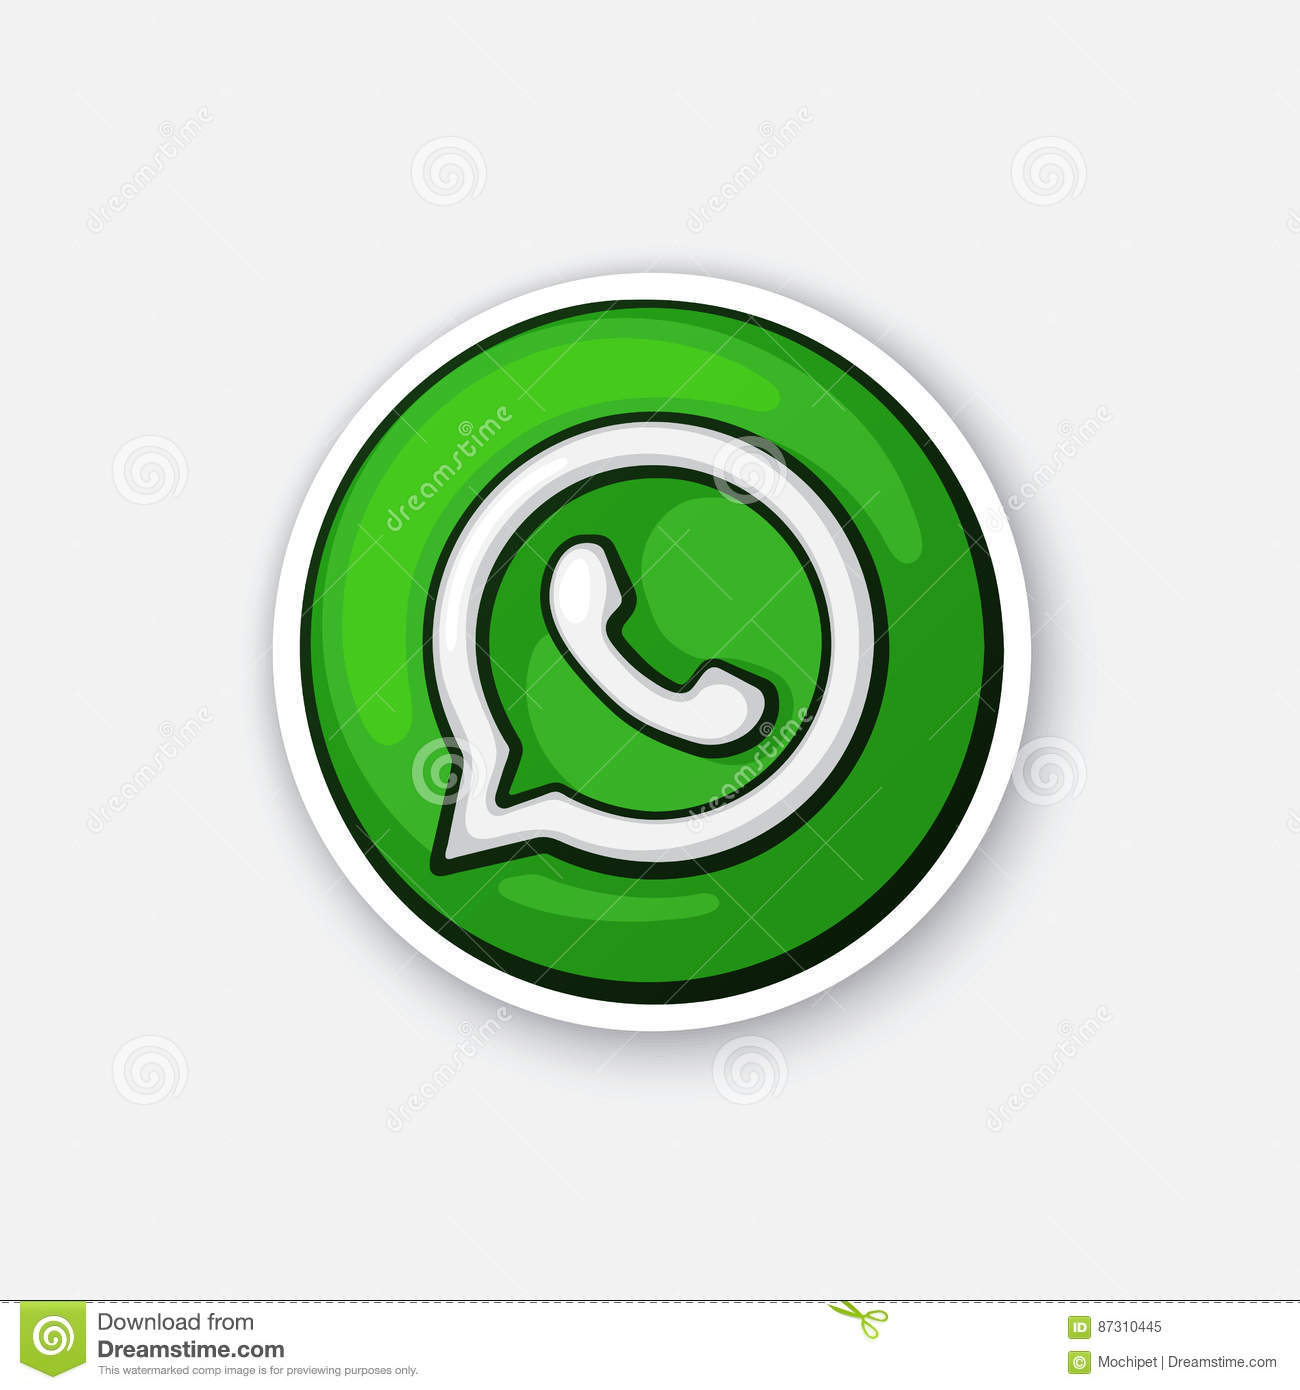 Sticker funny logotype of whatsapp